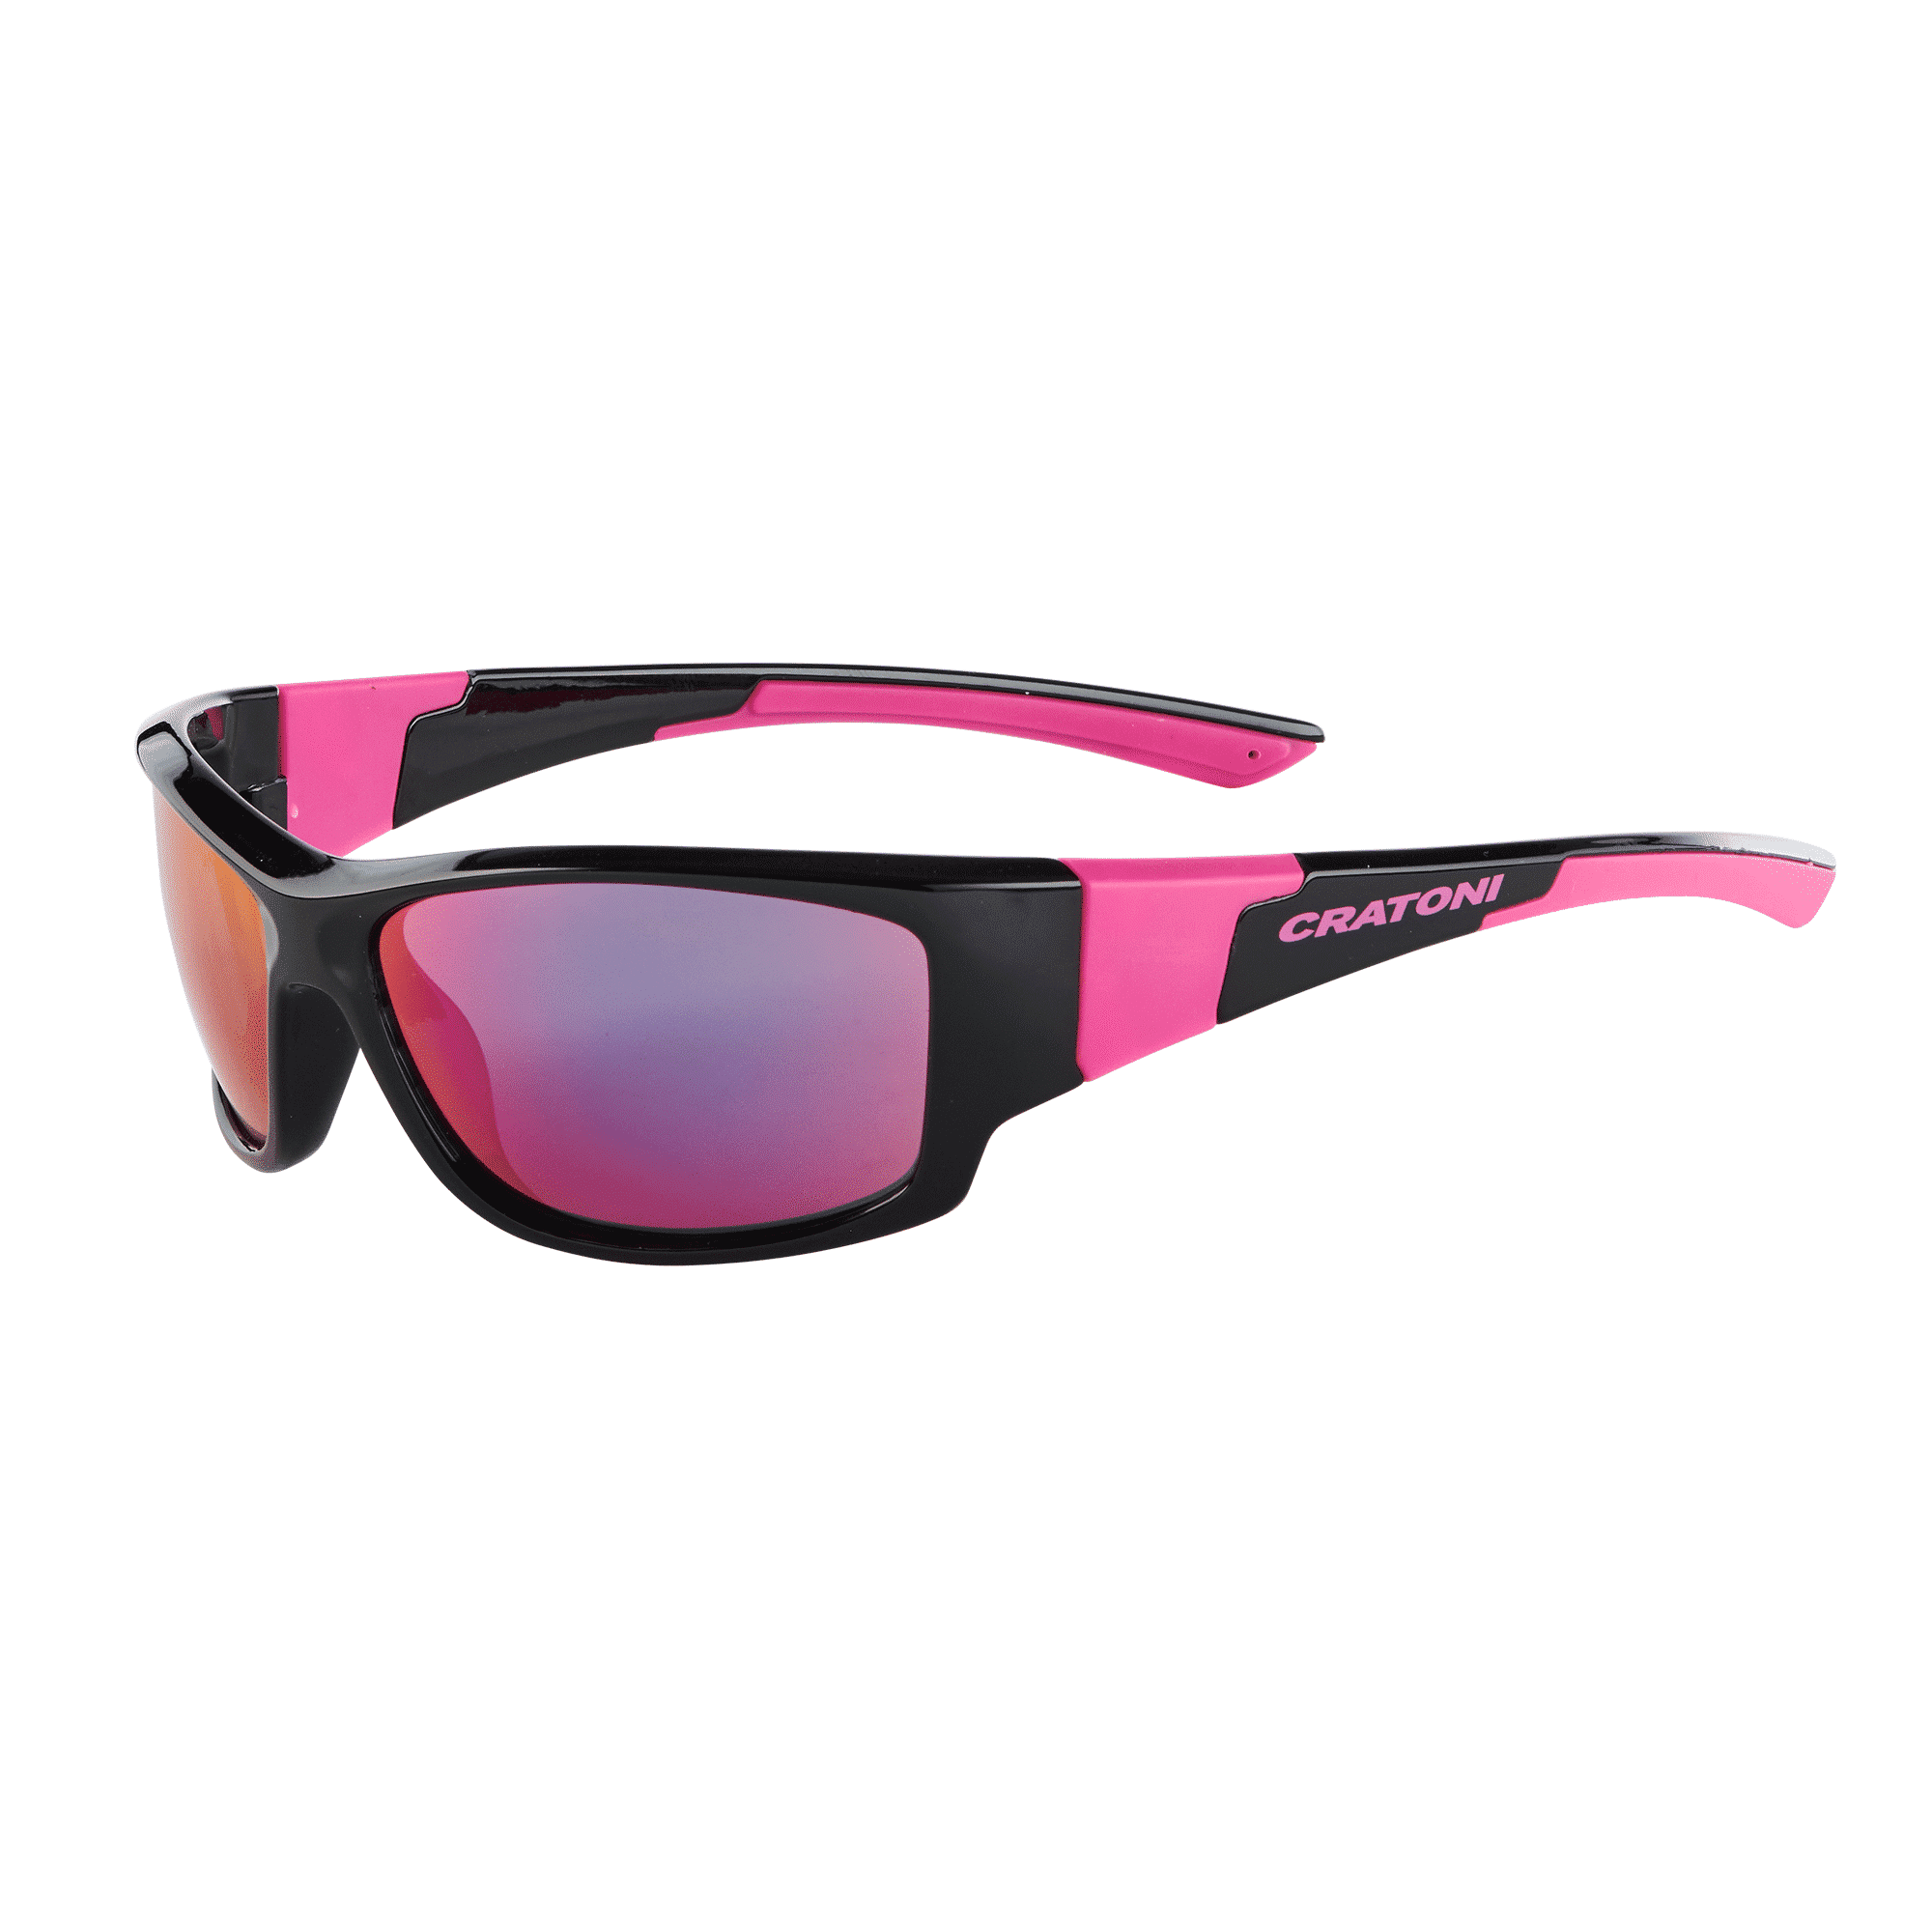 Cratoni C-Spin black-pink-glossy